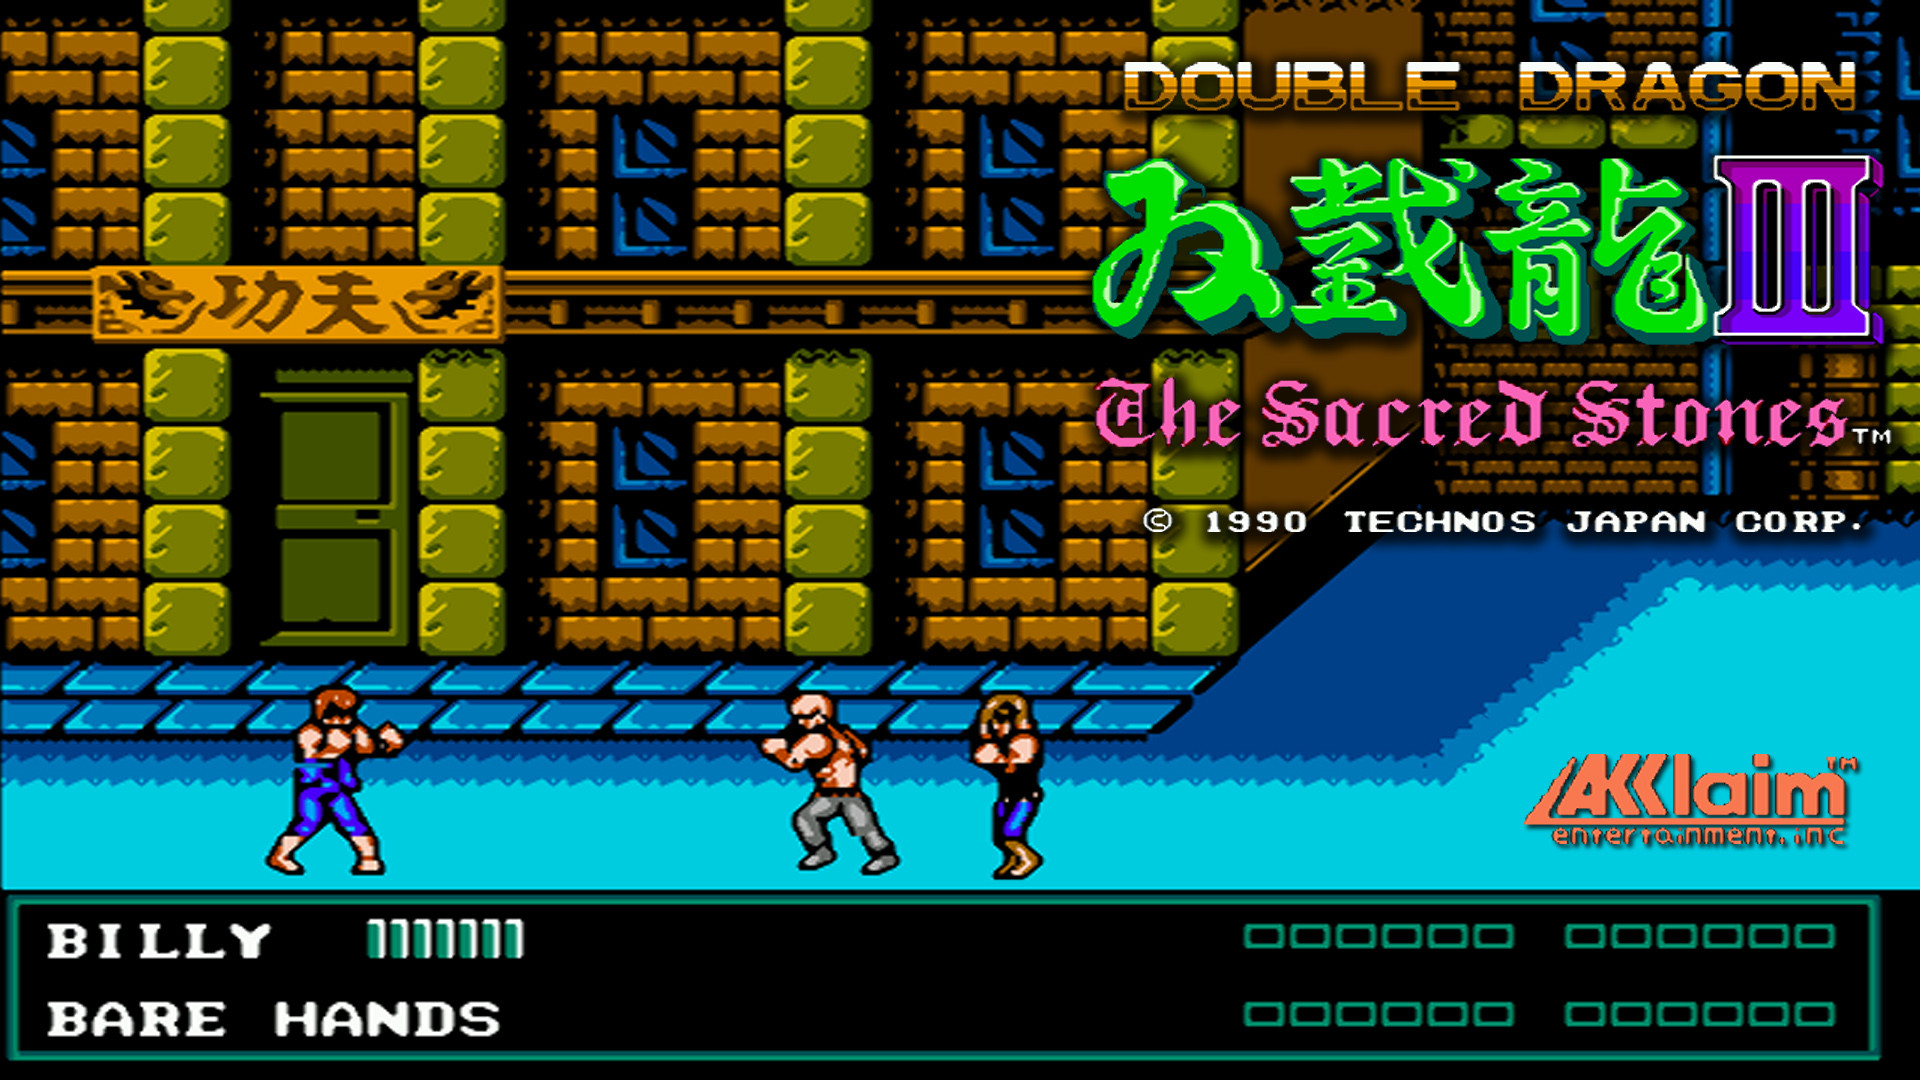 Res: 1920x1080, Video Game - Double Dragon III: The Sacred Stones Wallpaper